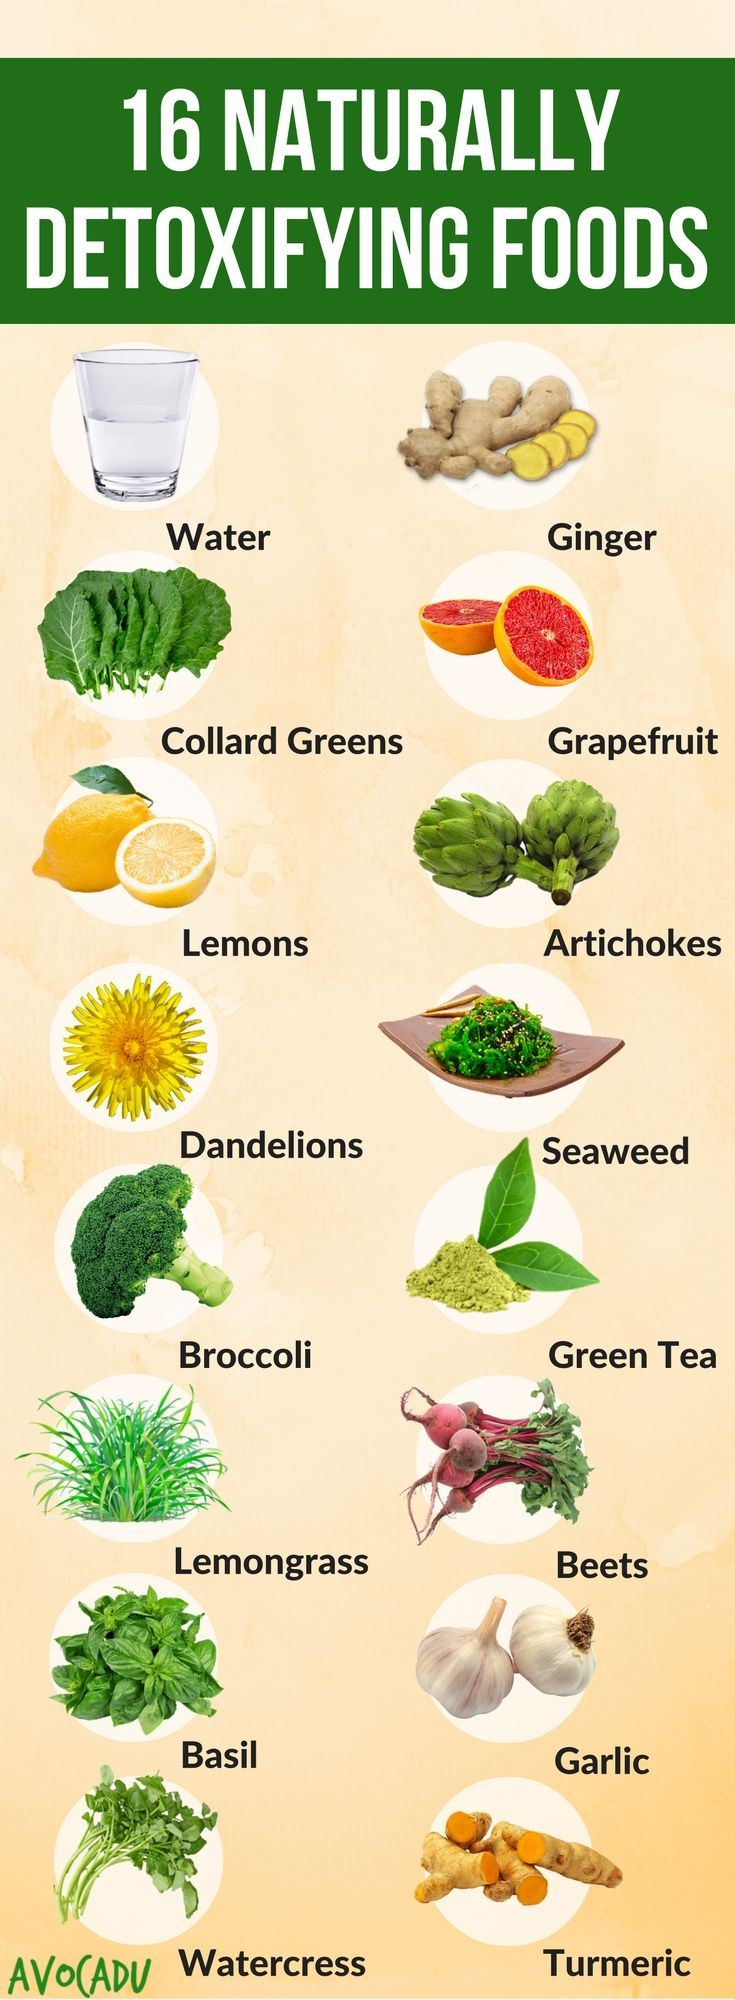 How To Detox The Liver Naturally With Food